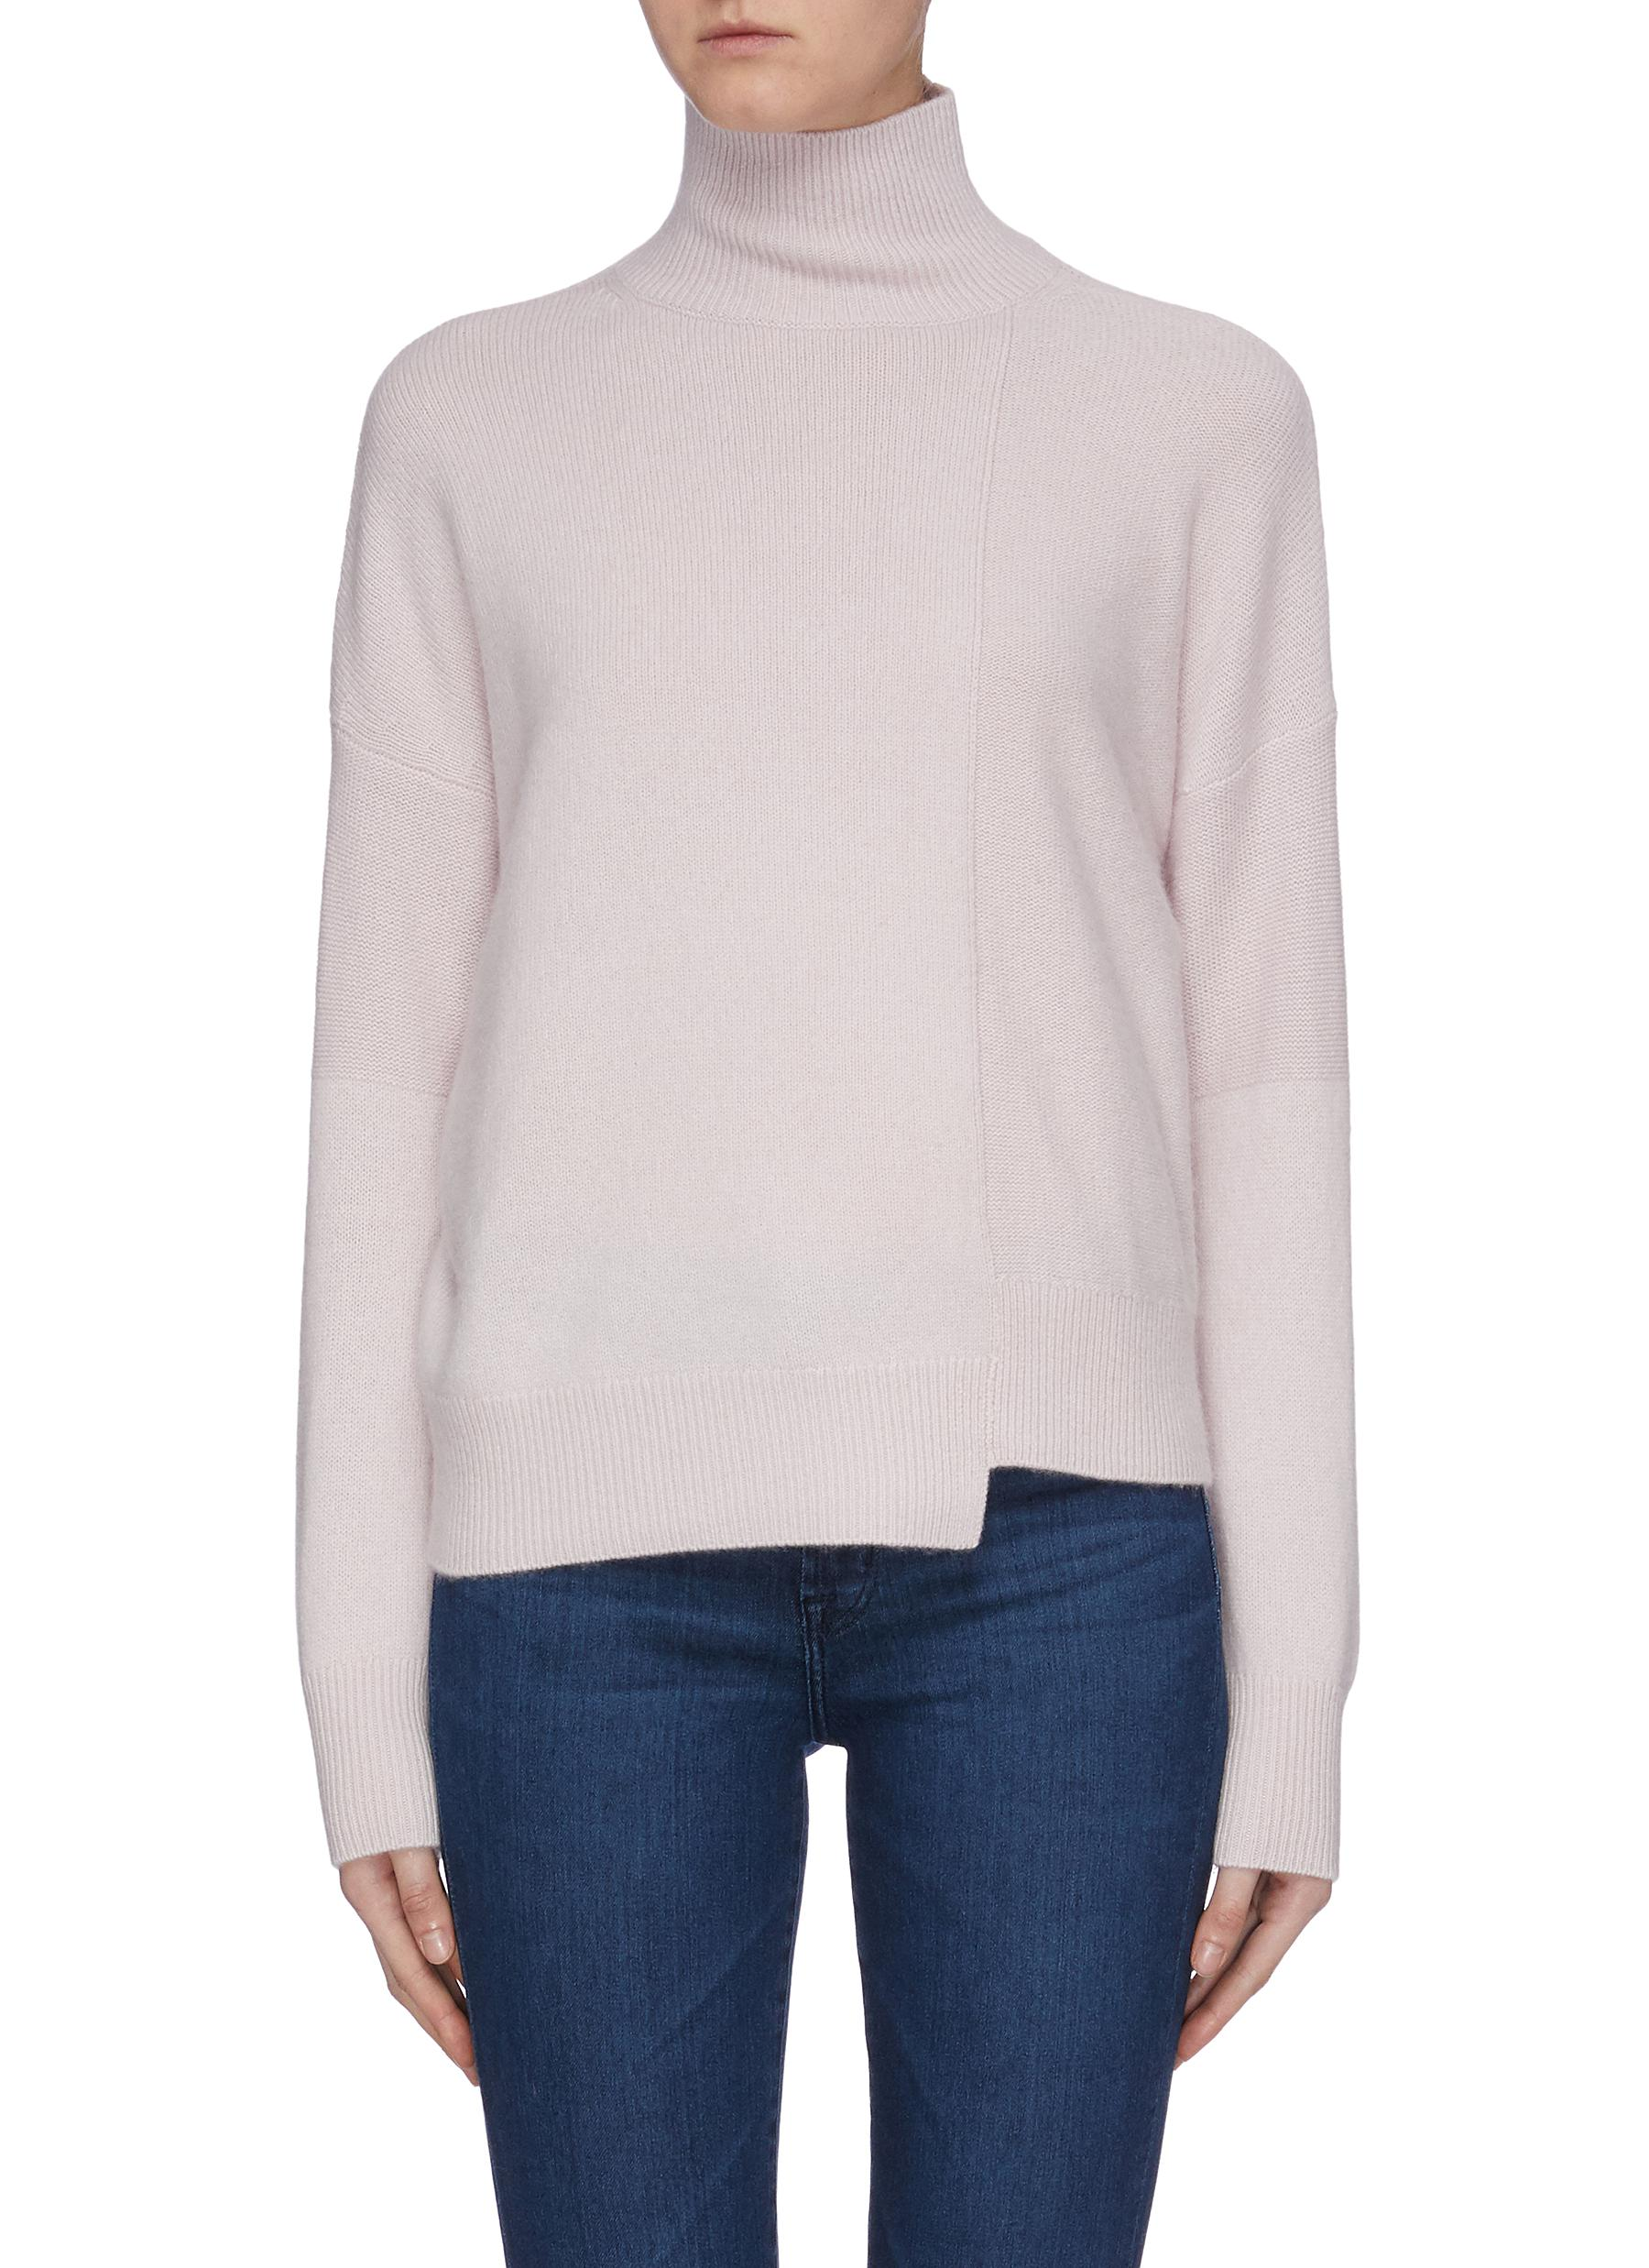 Stepped hem cashmere blend turtleneck sweater by Vince